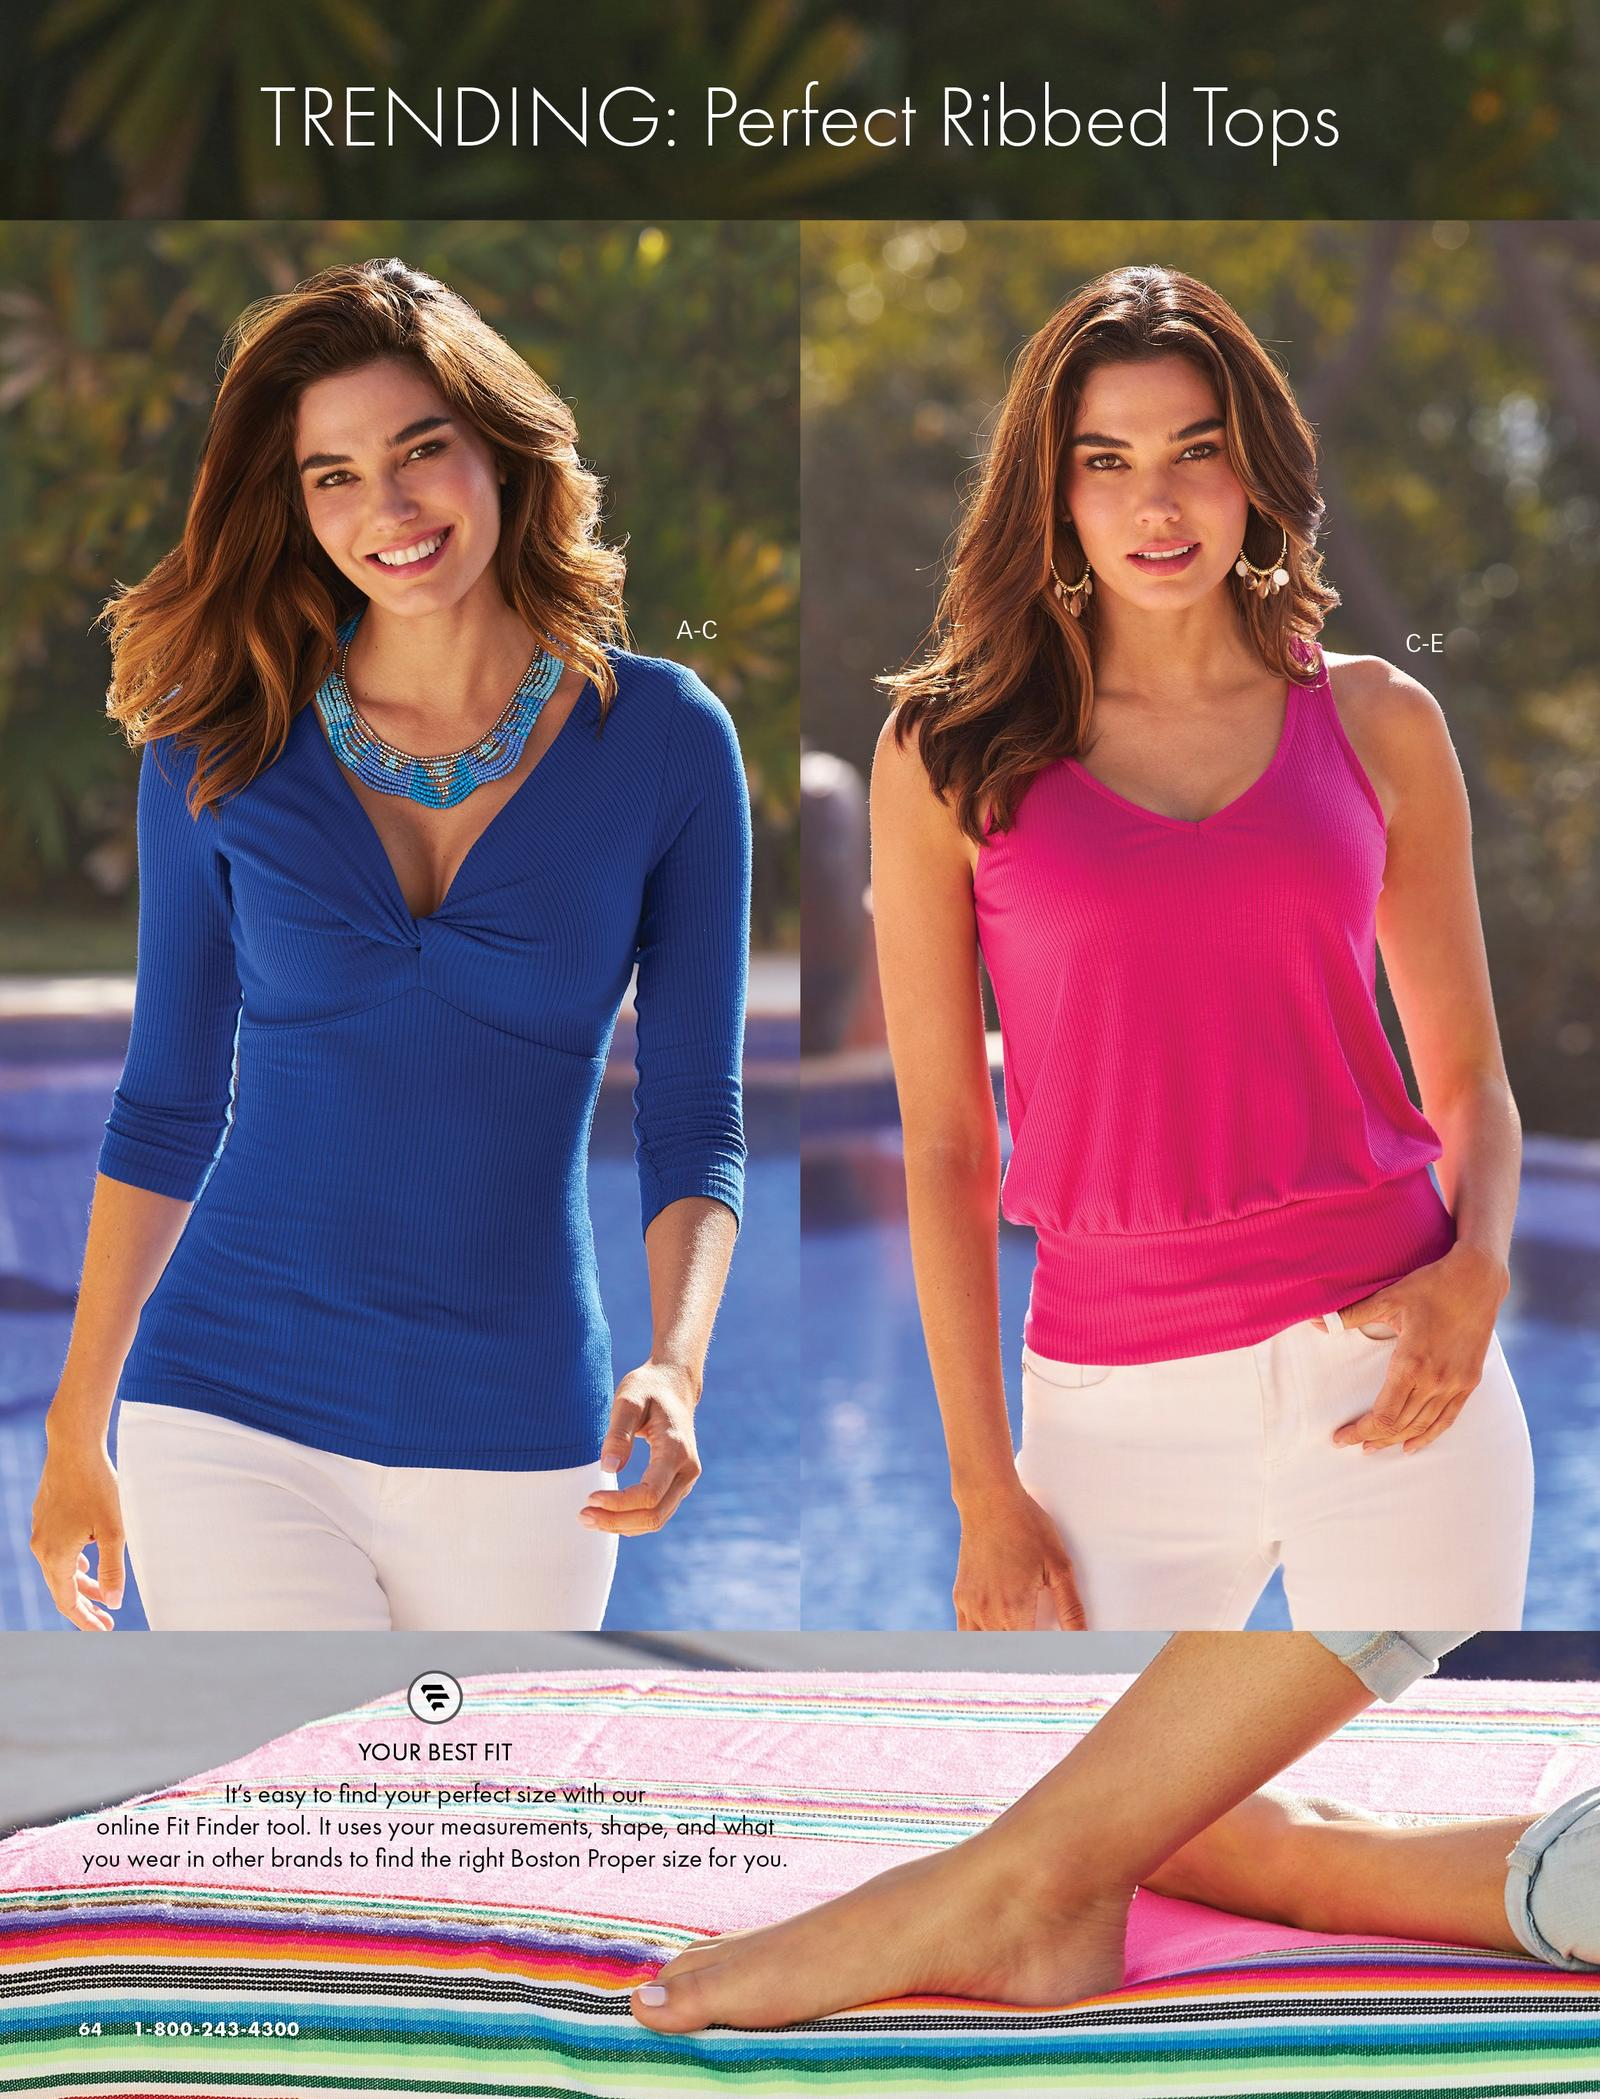 left model wearing a navy v-neck three-quarter sleeve twist-front ribbed top, blue beaded layered necklace, and white jeans. right model wearing a pink ribbed blouson tank top, gold embellished hoop earrings, and white jeans.